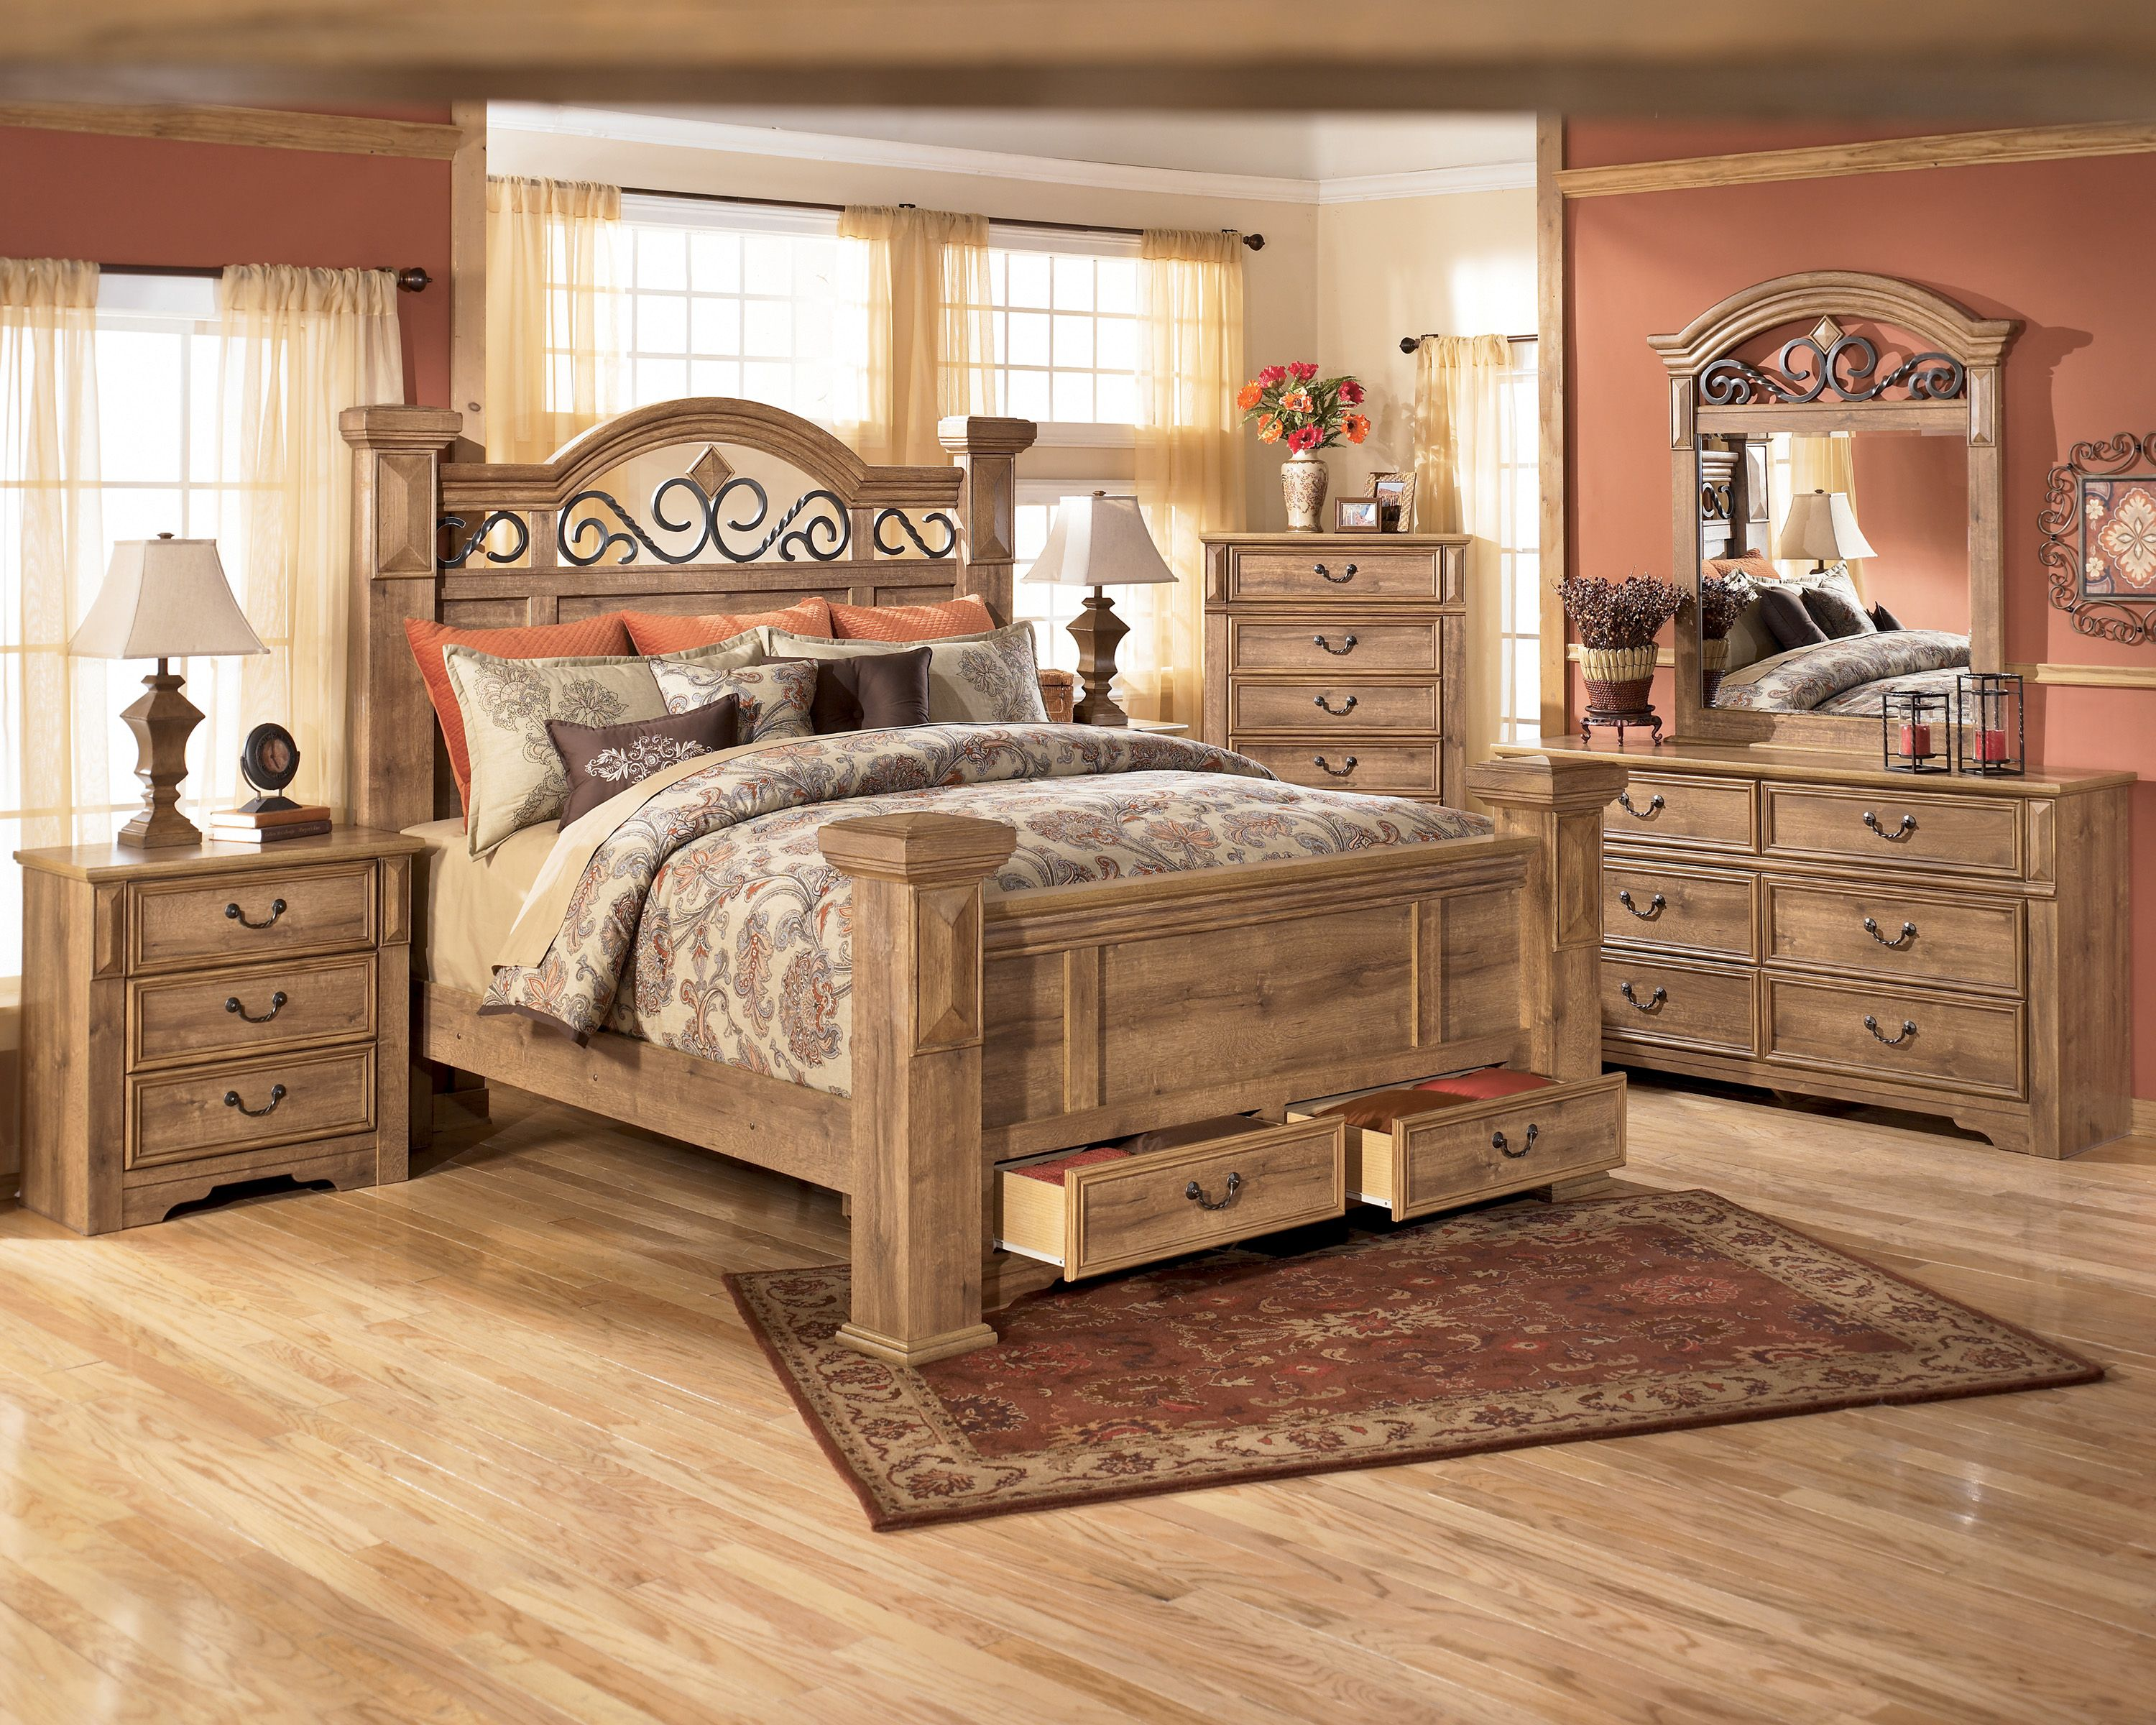 Best King Size Bed Set Rosalinda King Beds Pinterest